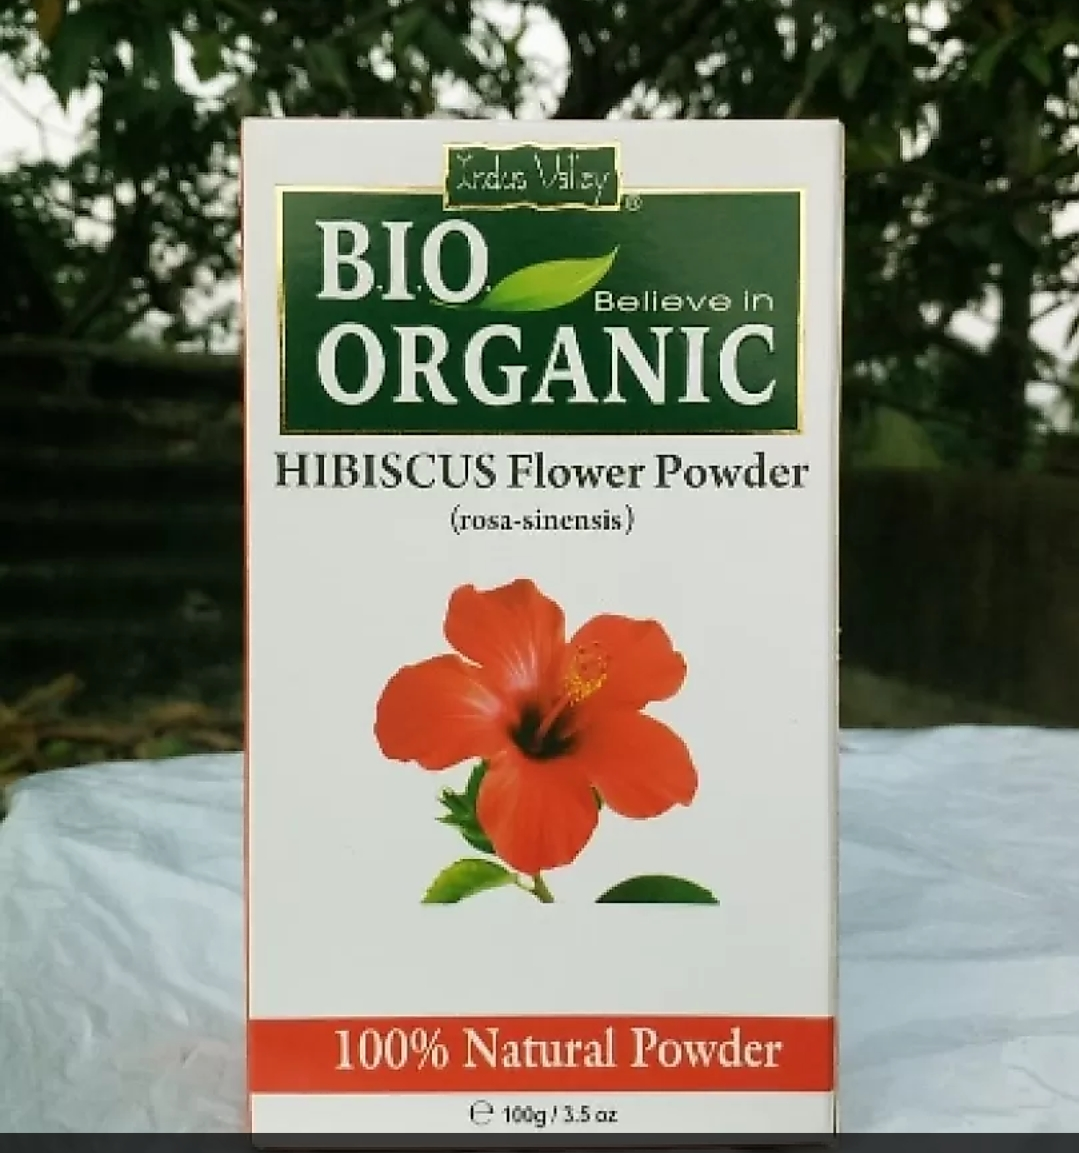 Indus Valley Bio Organic Hibiscus Powder -Very good product-By anuk